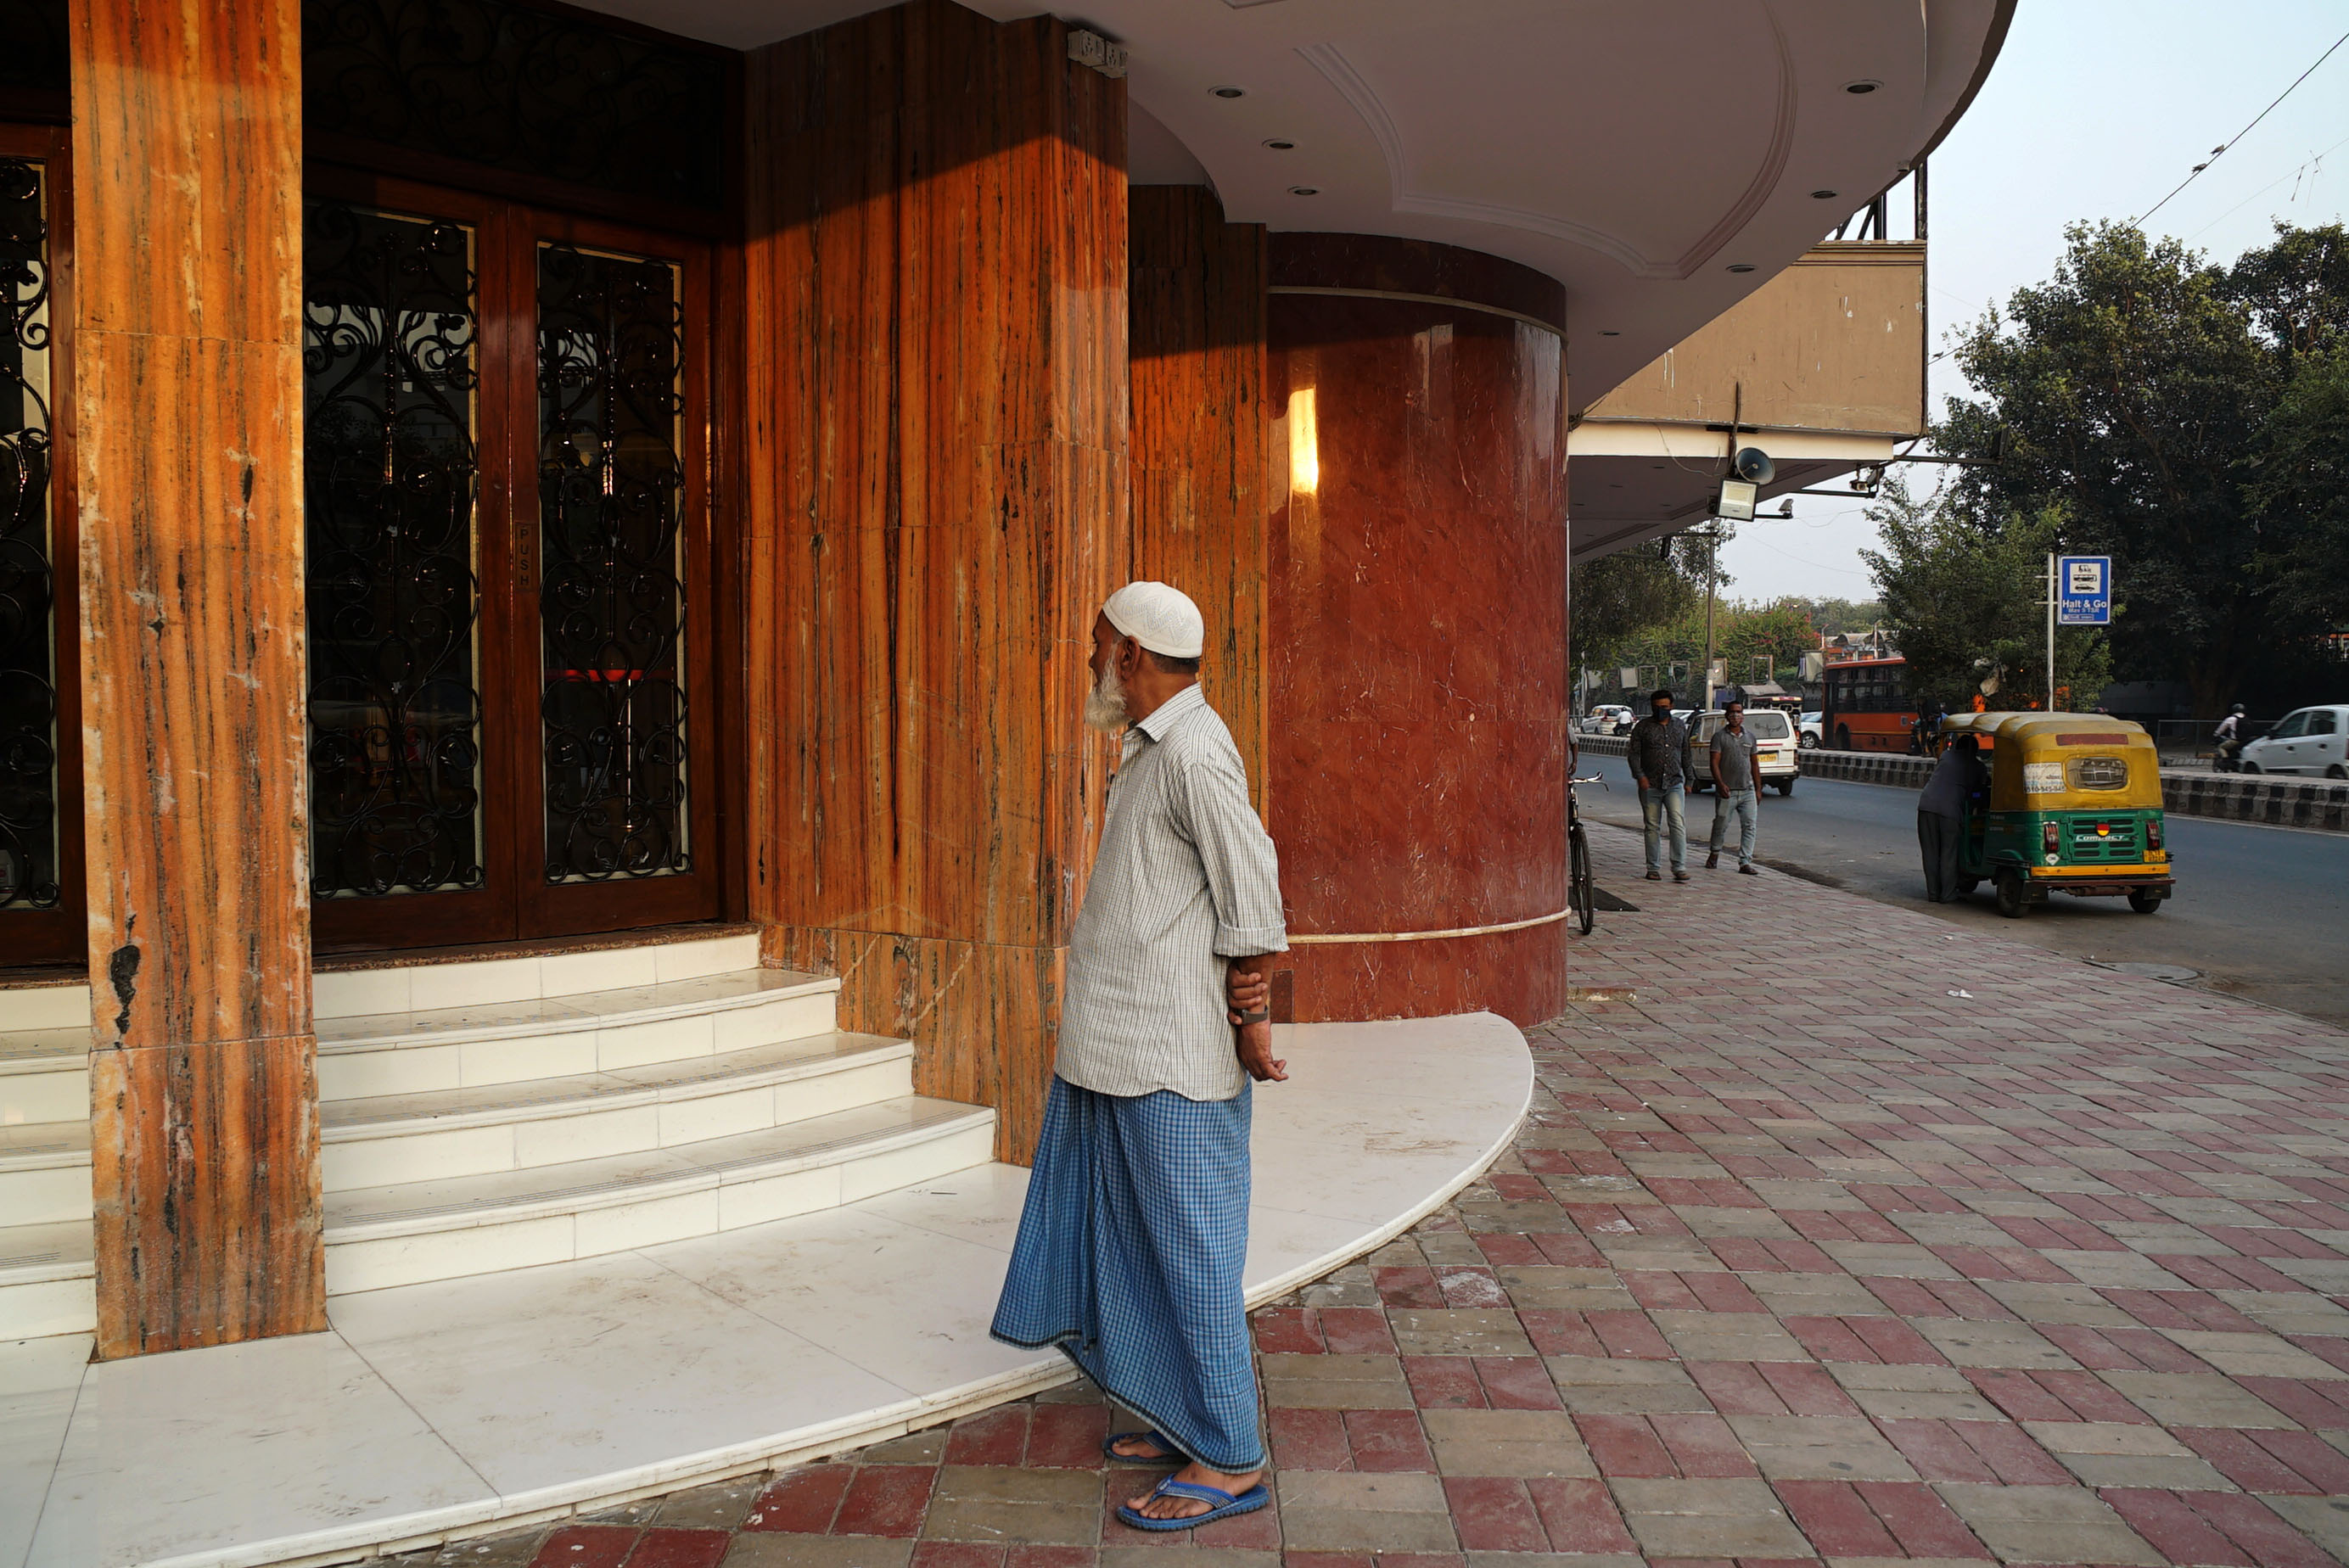 A passerby peers into the Delite cinema in Delhi, which has been closed during the pandemic. (Veda Shastri)